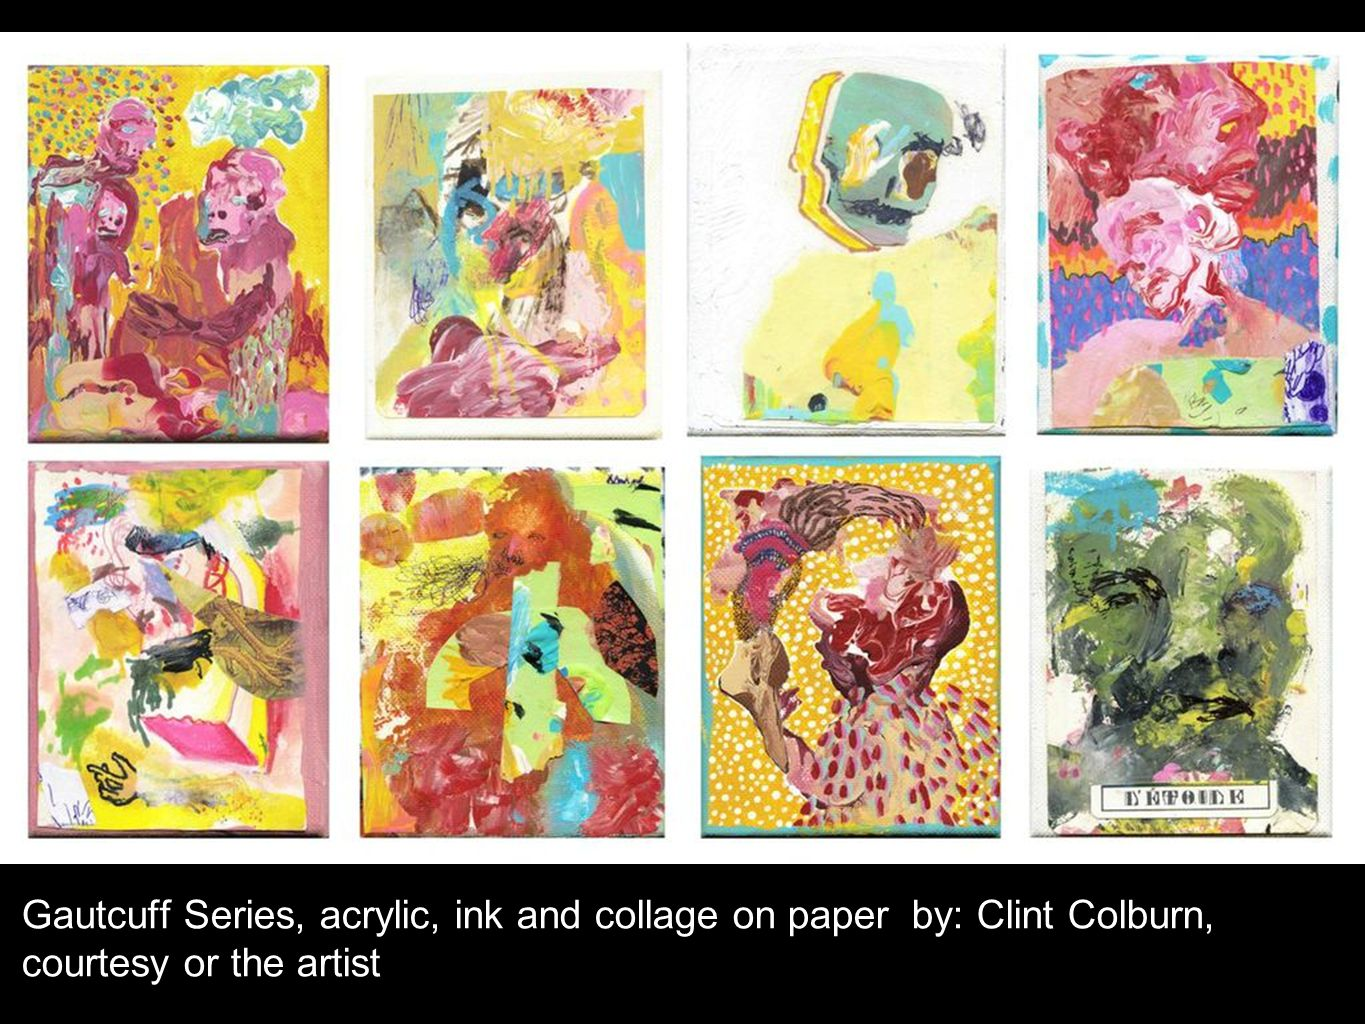 Gautcuff Series, acrylic, ink and collage on paper by: Clint Colburn, courtesy or the artist